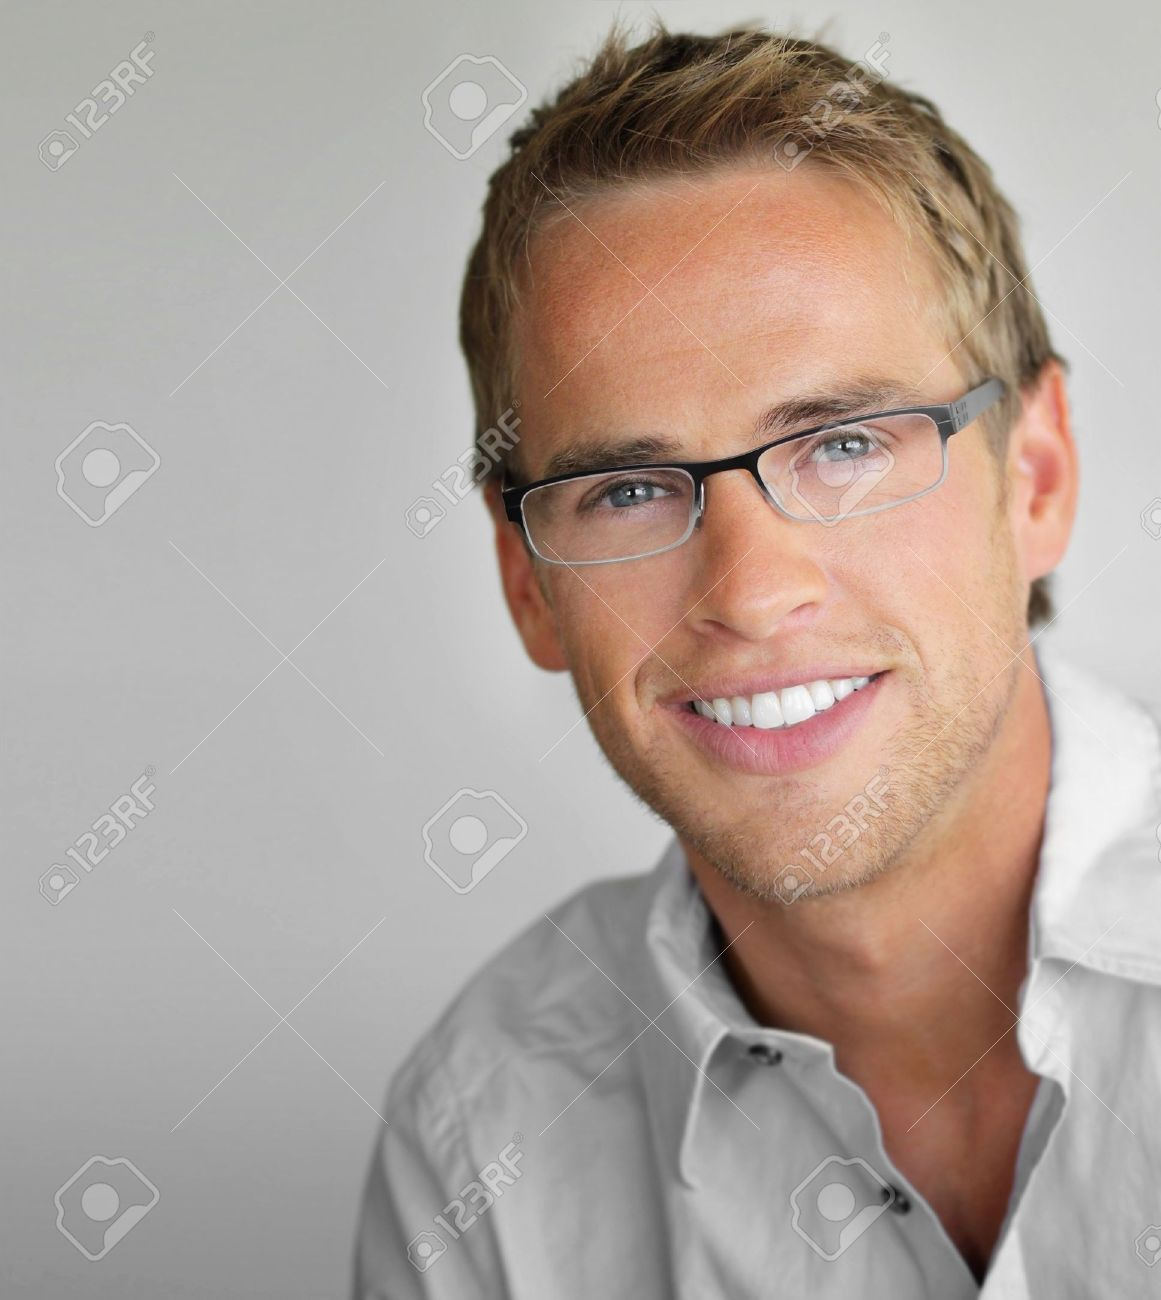 Young Cool Trendy Man With Glasses Smiling Stock Photo, Picture ...